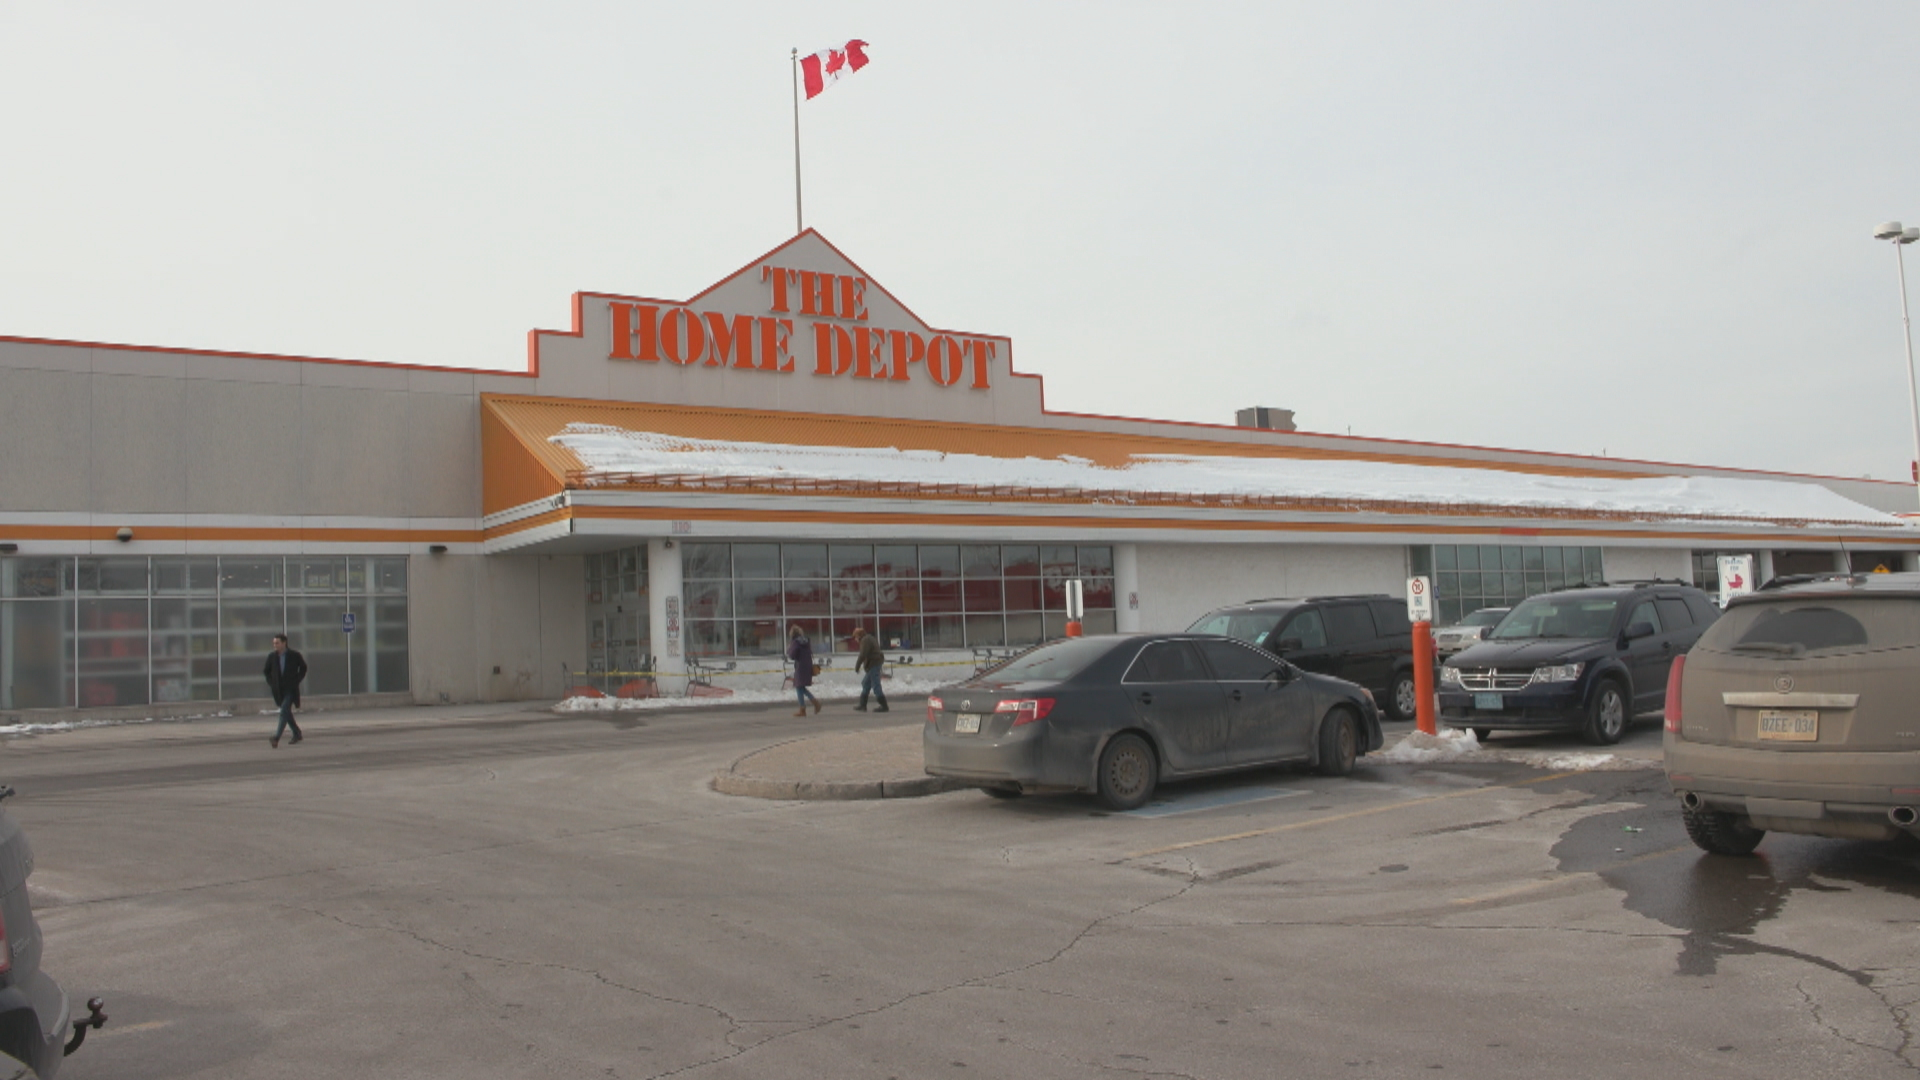 Sandra Finn was shot to death by her husband in this Home Depot parking lot in Peterborough, Ont. (Jean LeSavage/CBC)